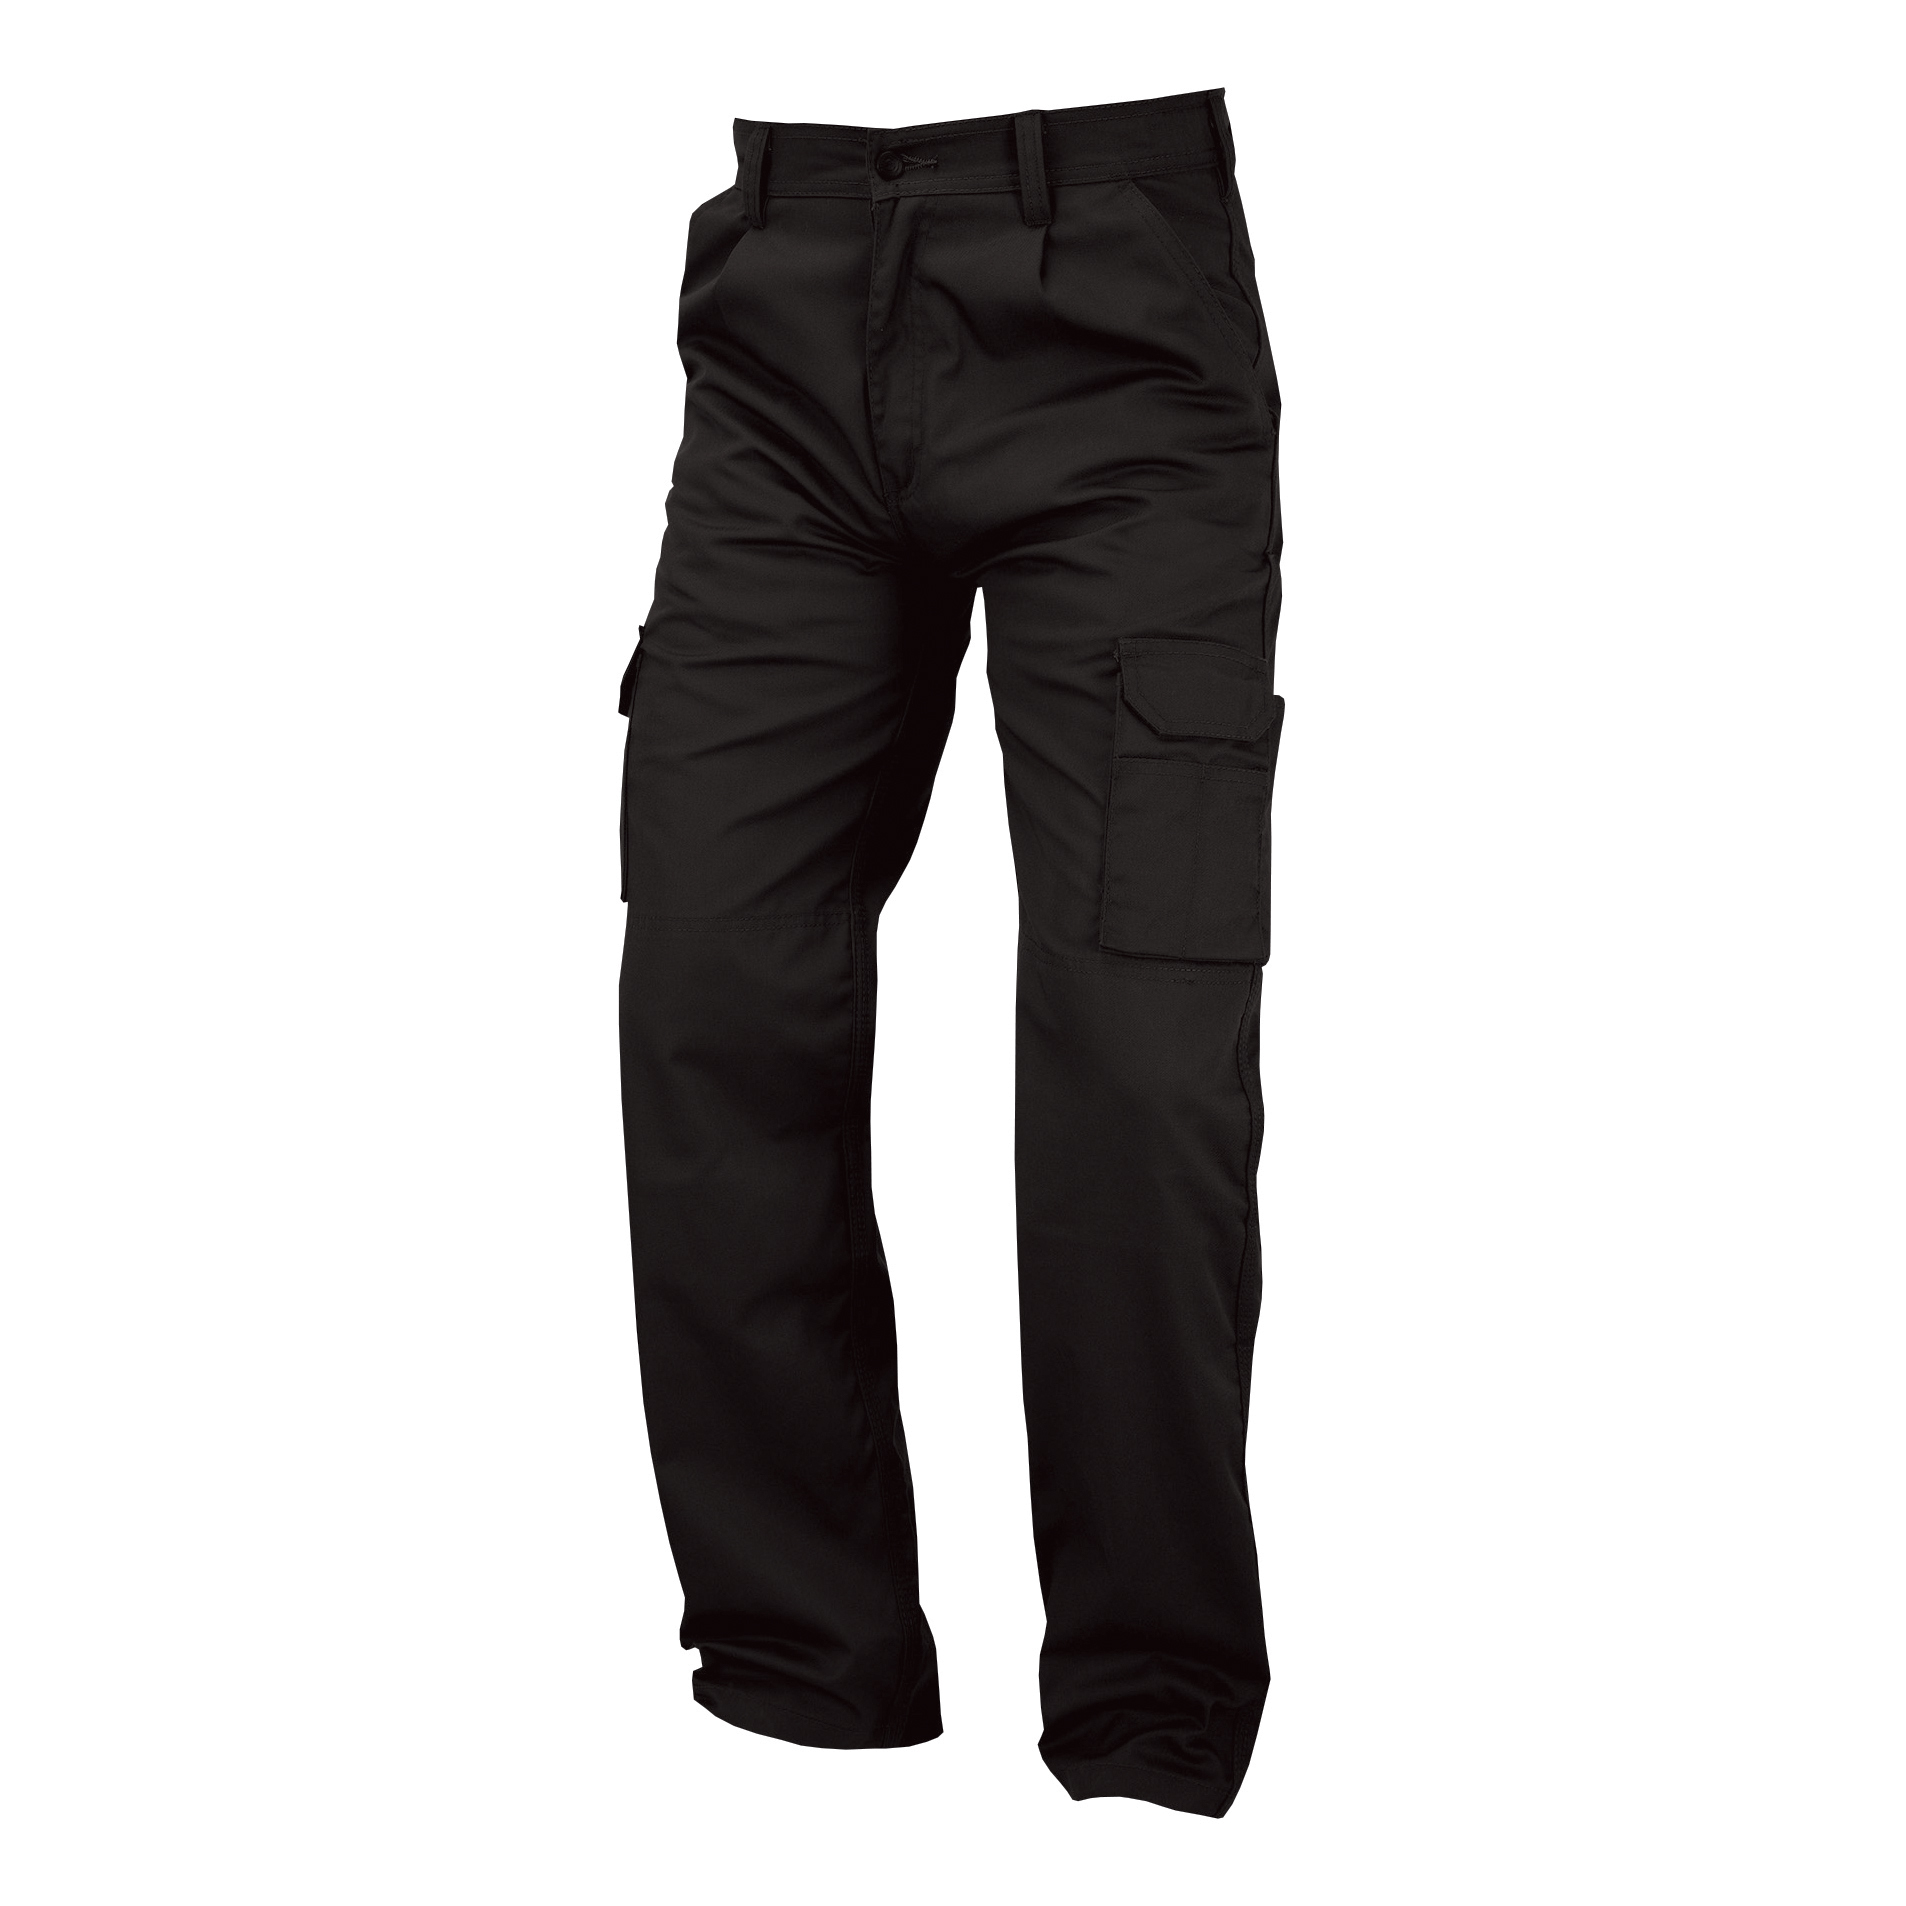 Combat Trousers Multifunctional 50in Regular Black Ref PCTHWBL50 *Approx 3 Day Leadtime*